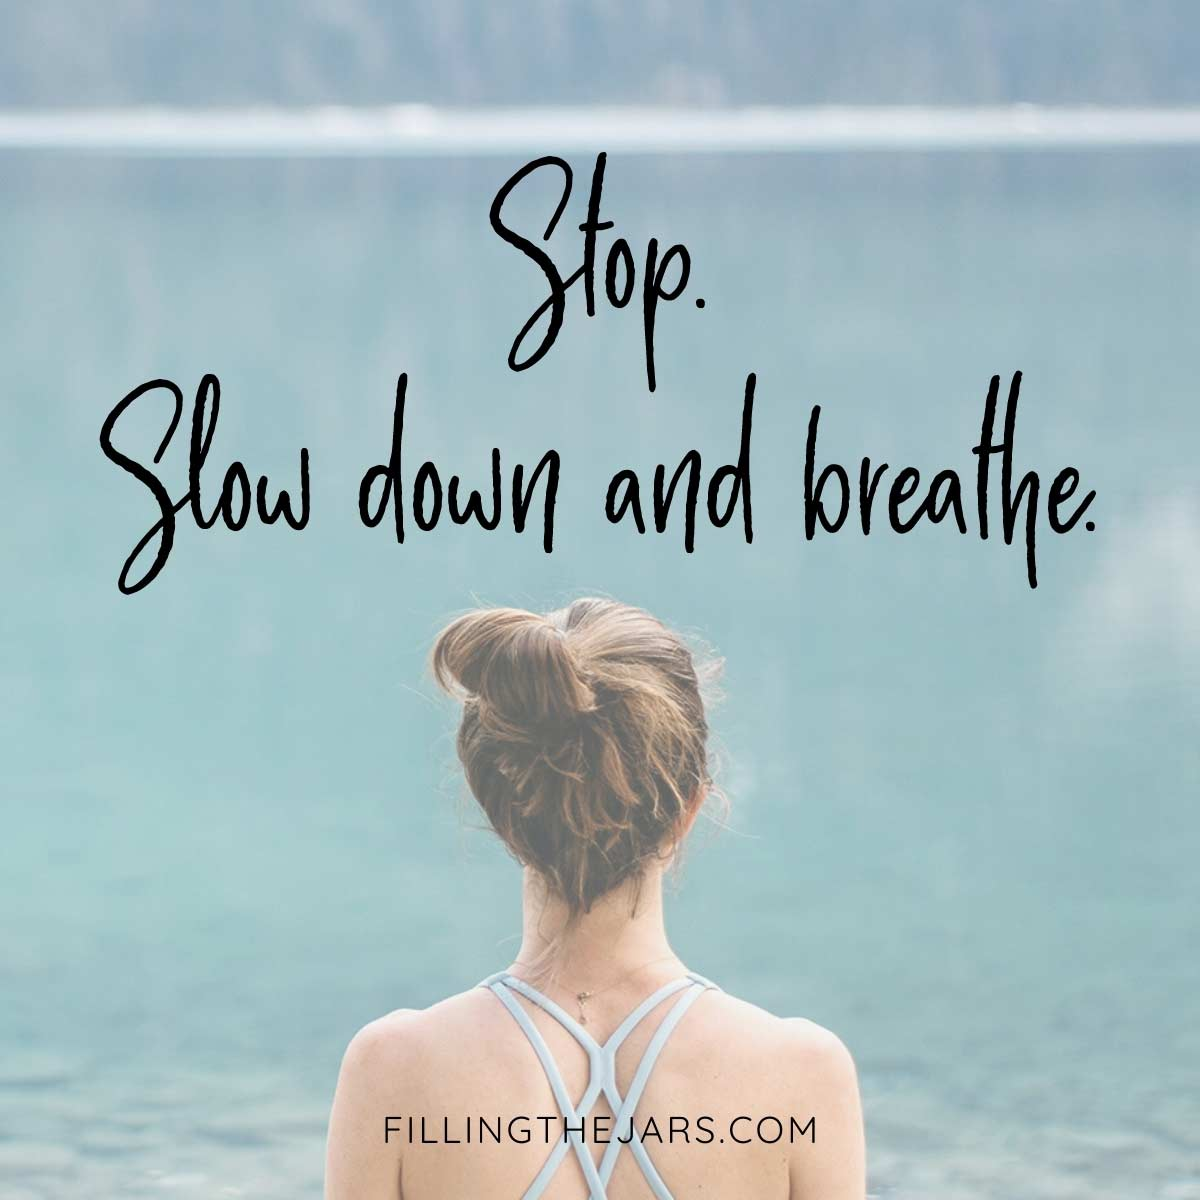 Slow down and breathe quote in black text on background of woman wearing yoga outfit with hair pulled up and looking at blue mountain lake.